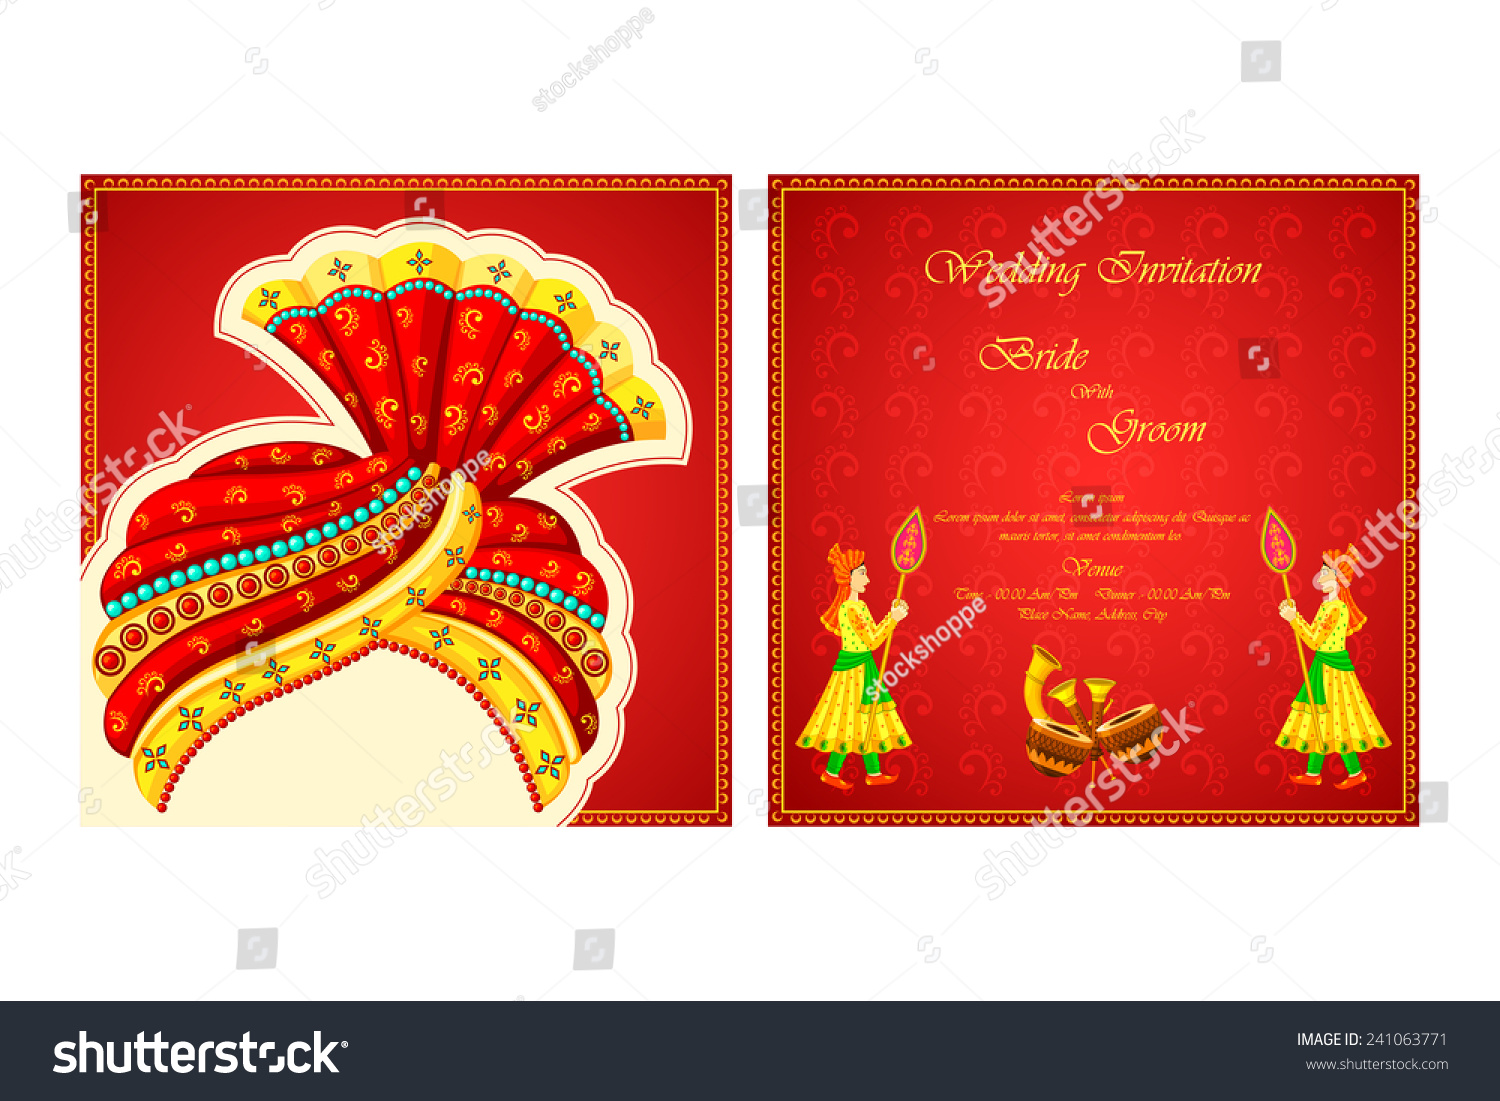 The best wedding invitation blog: Indian wedding invitations vector